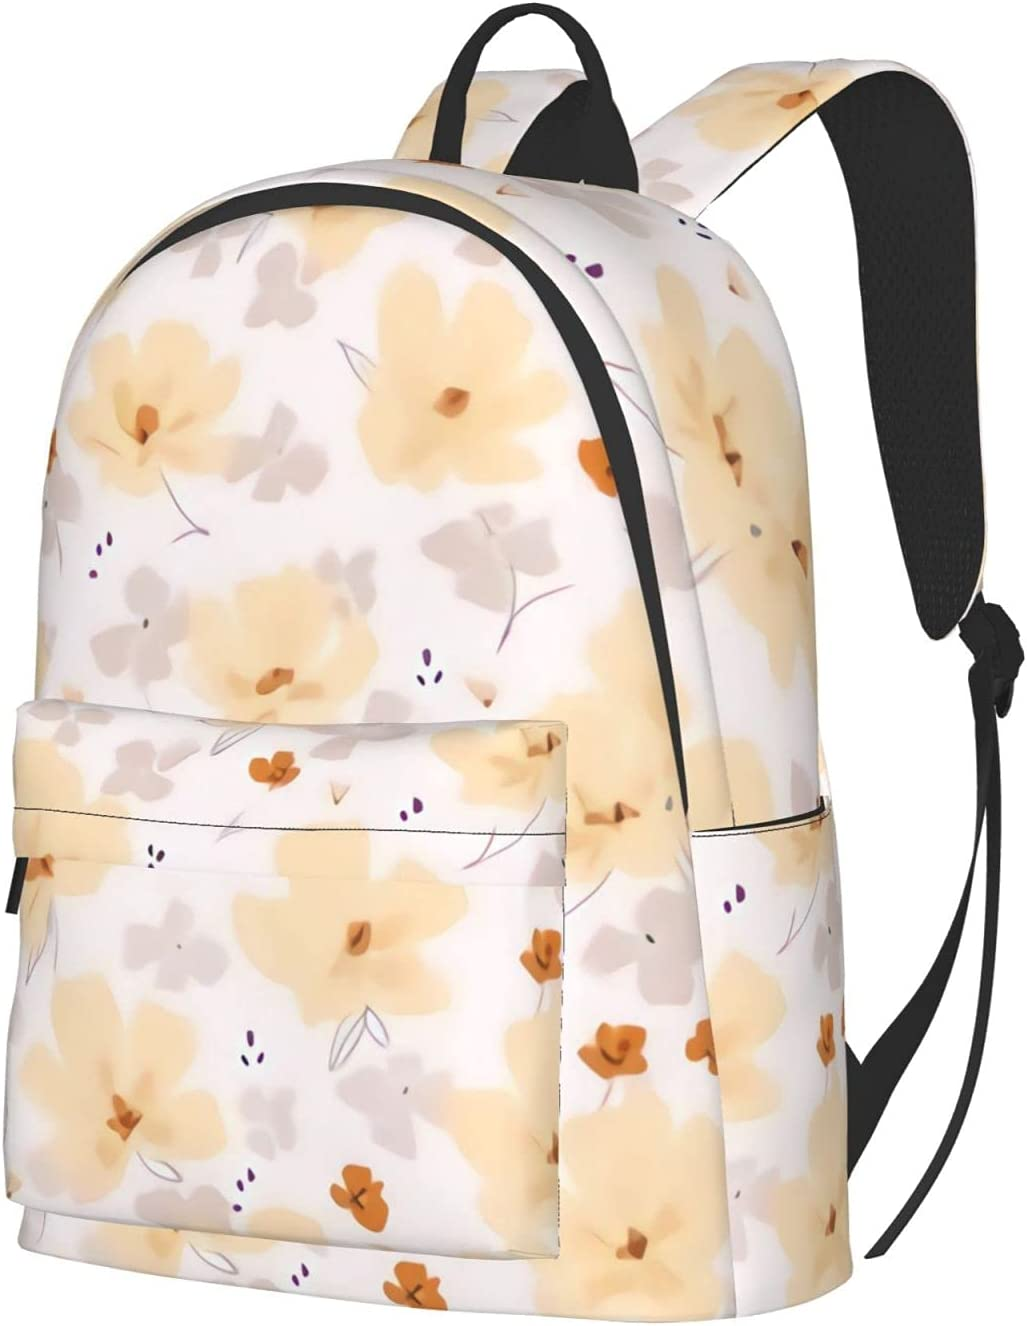 Soft Small Floral - on light Backpac Backpack Laptop Travel Special Campaign Super beauty product restock quality top! pink